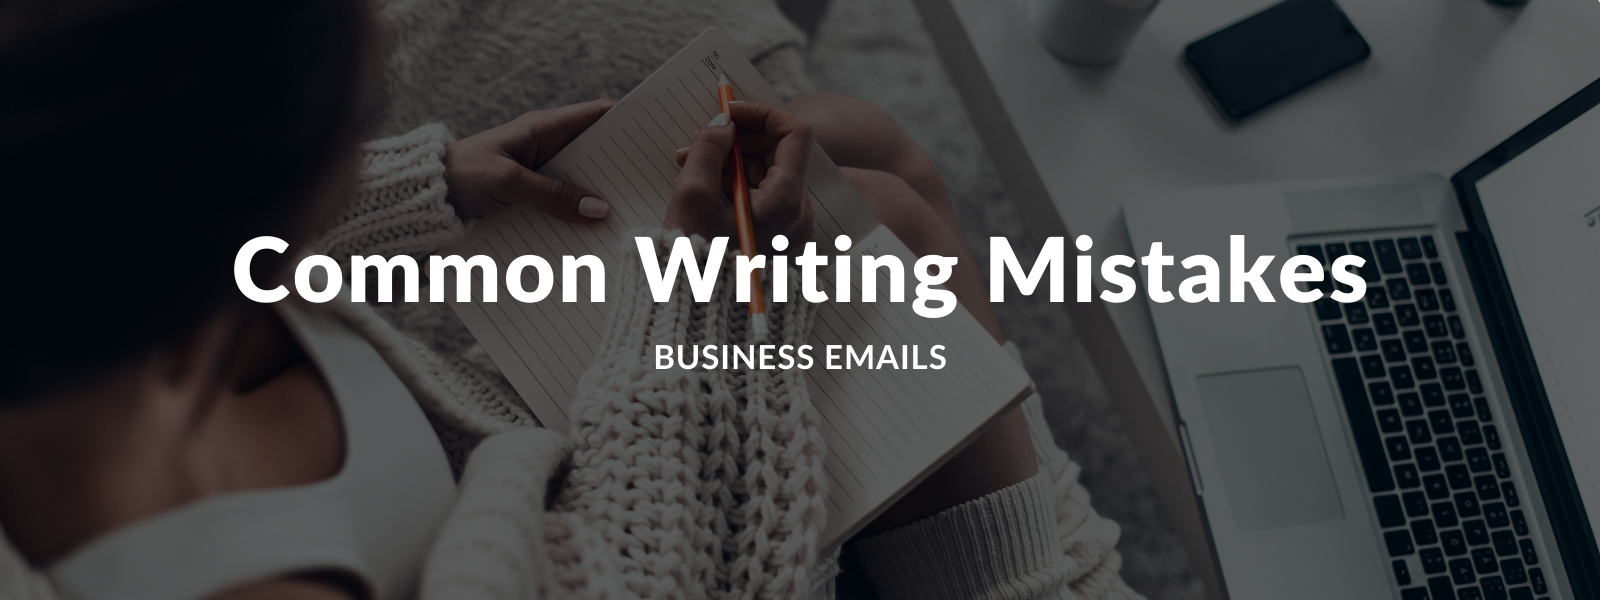 Common writing mistakes english business emails - Talaera Blog.png